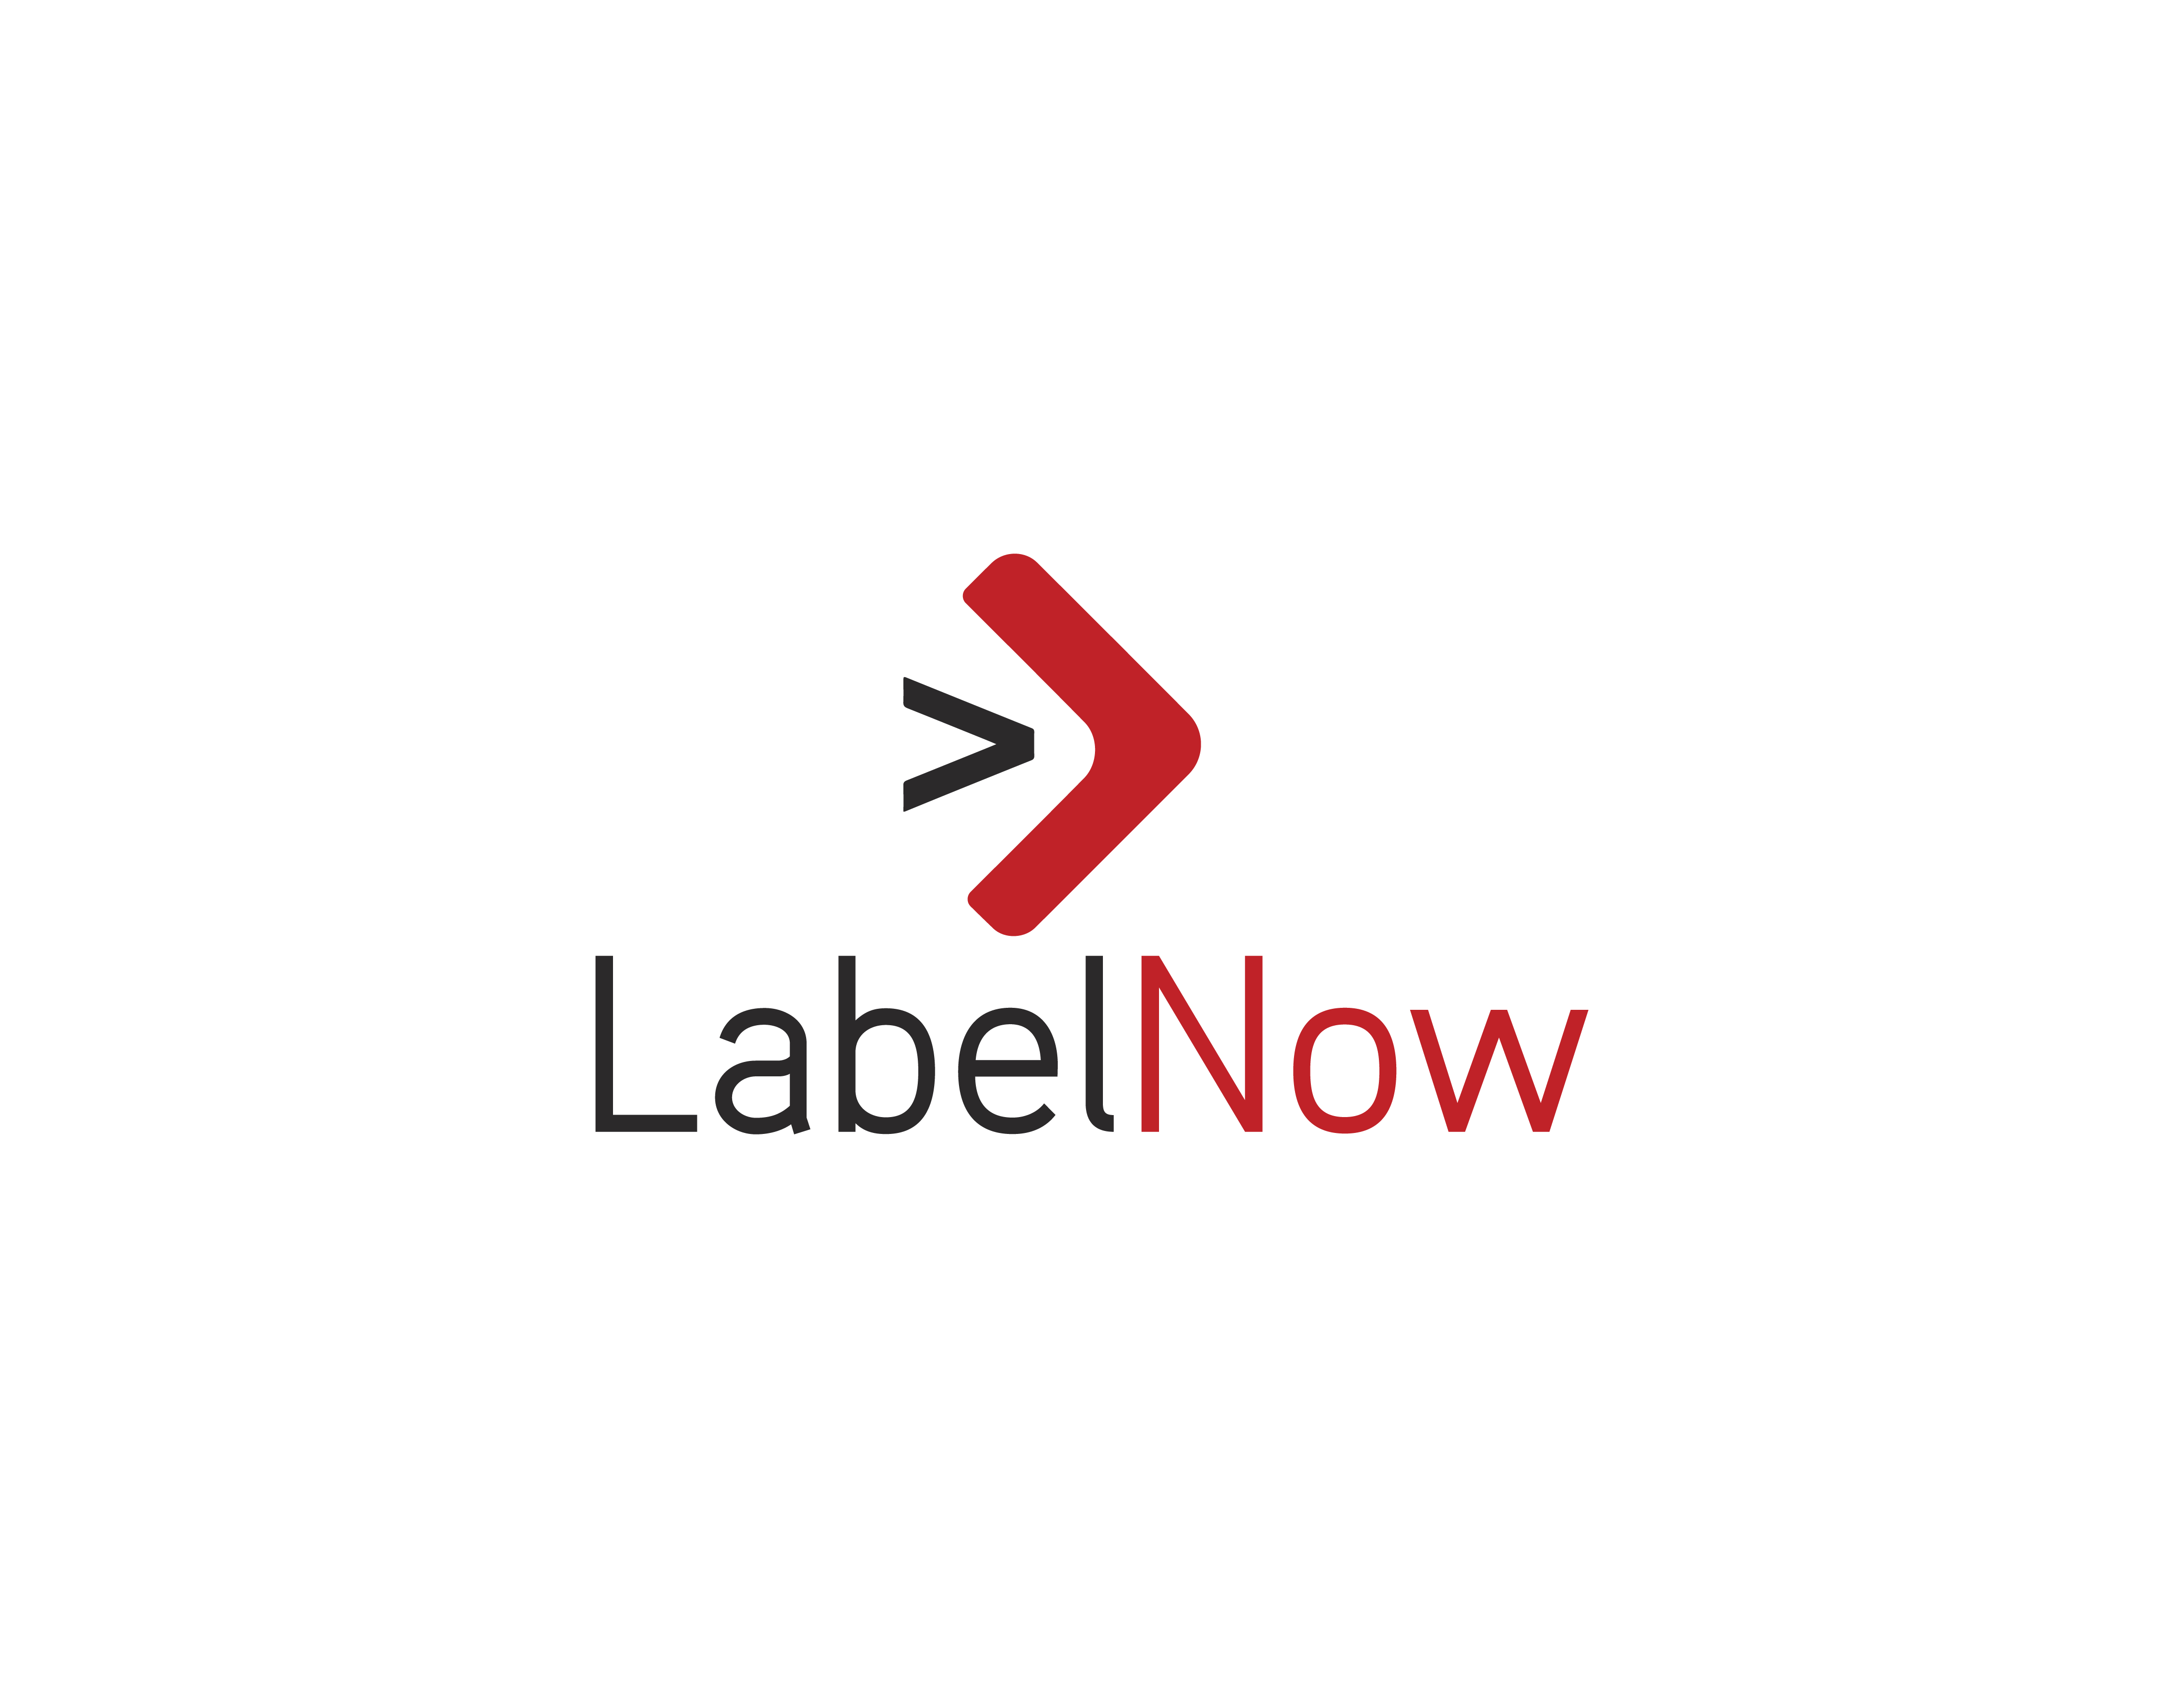 Creating a Compliant Label has never been easier